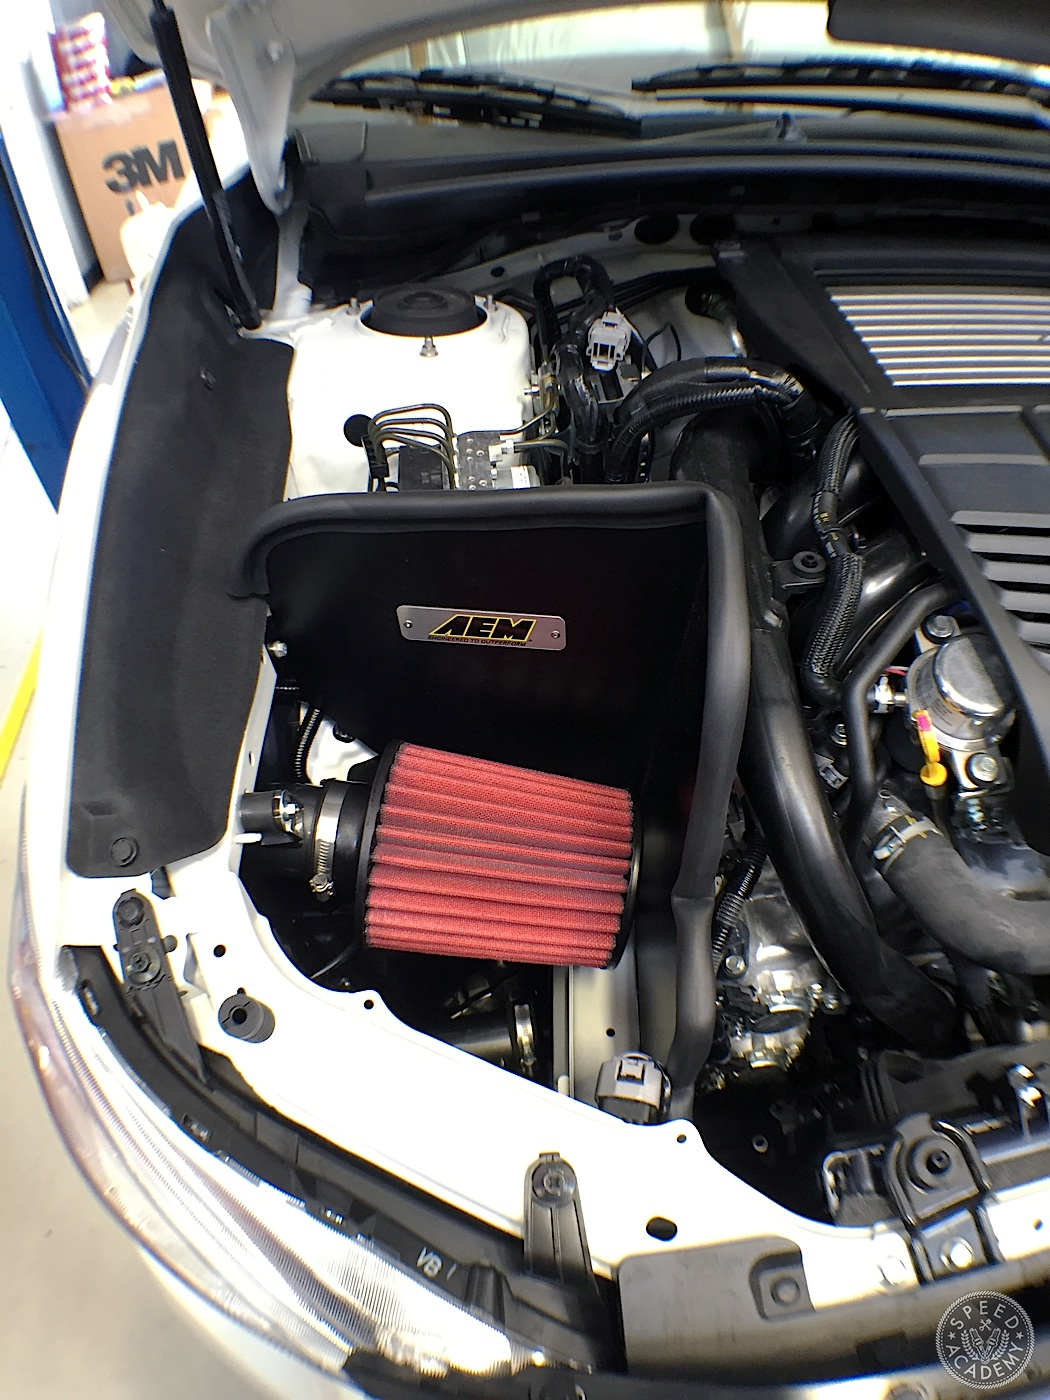 AEM Intake 2015 WRX 06 dyno tested aem cold air intake 2015 subaru wrx speed academy Subaru Firing Order Diagram at n-0.co